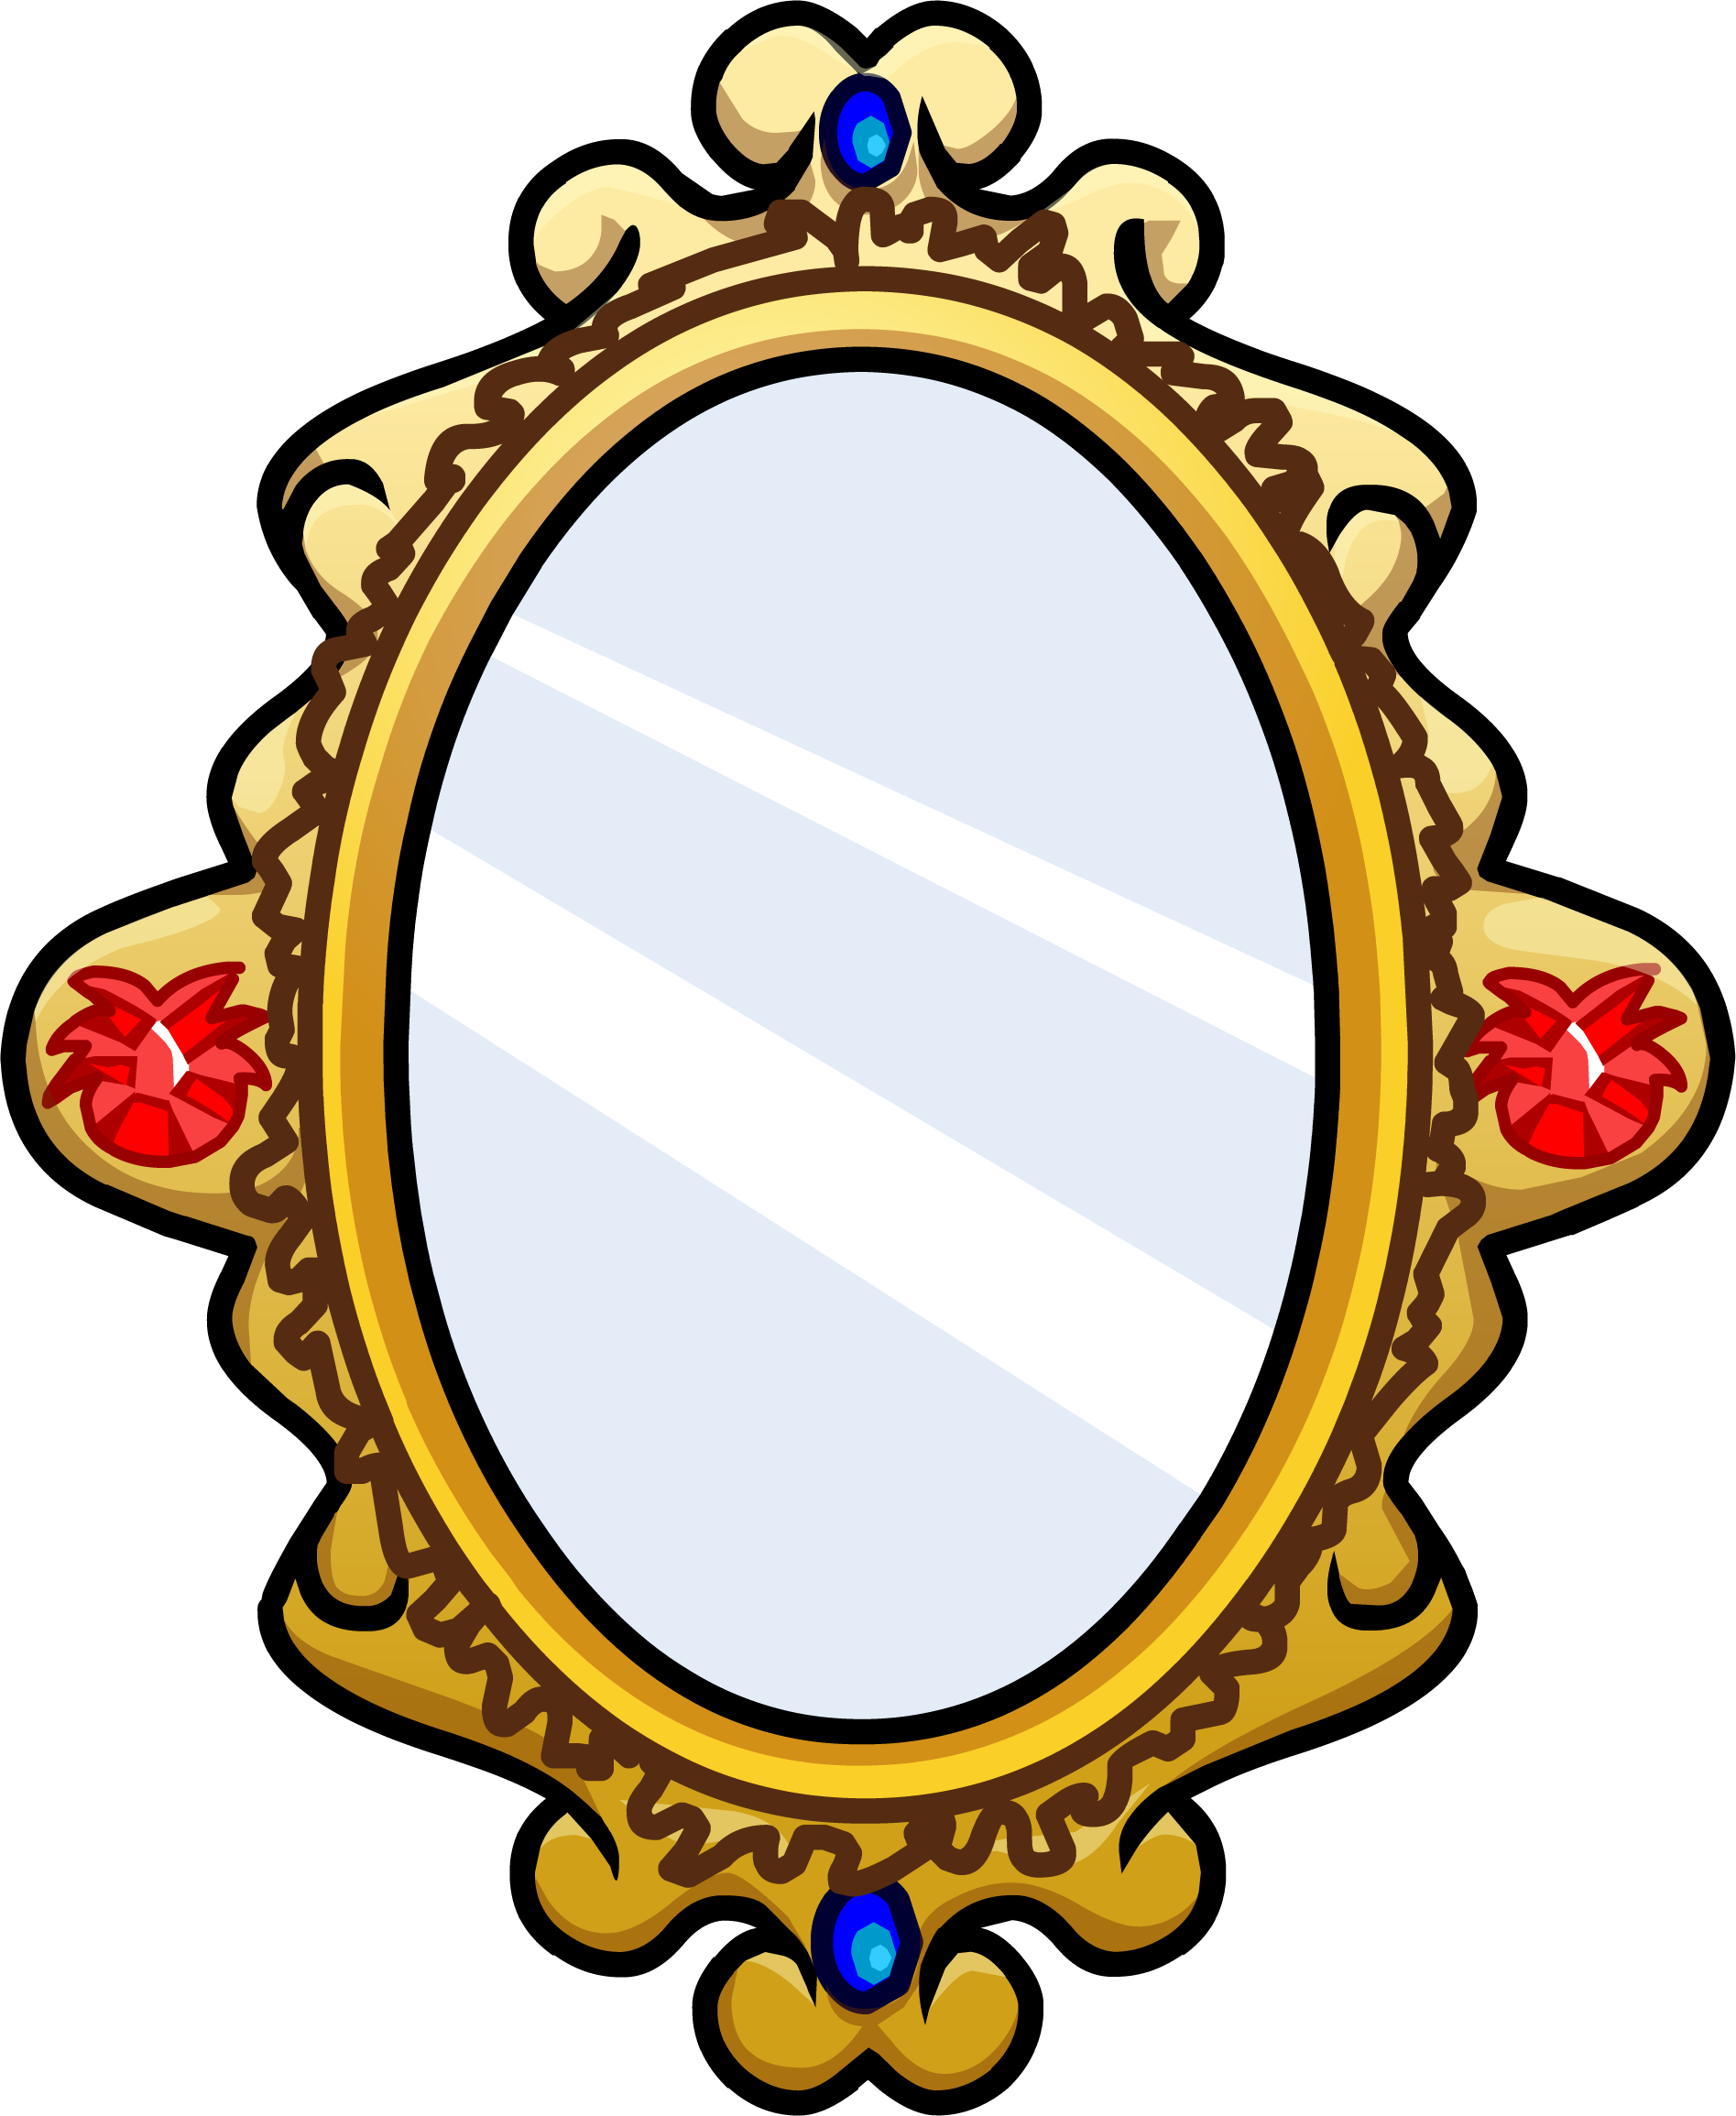 Ornate Mirror Club Penguin Wiki The Free Editable